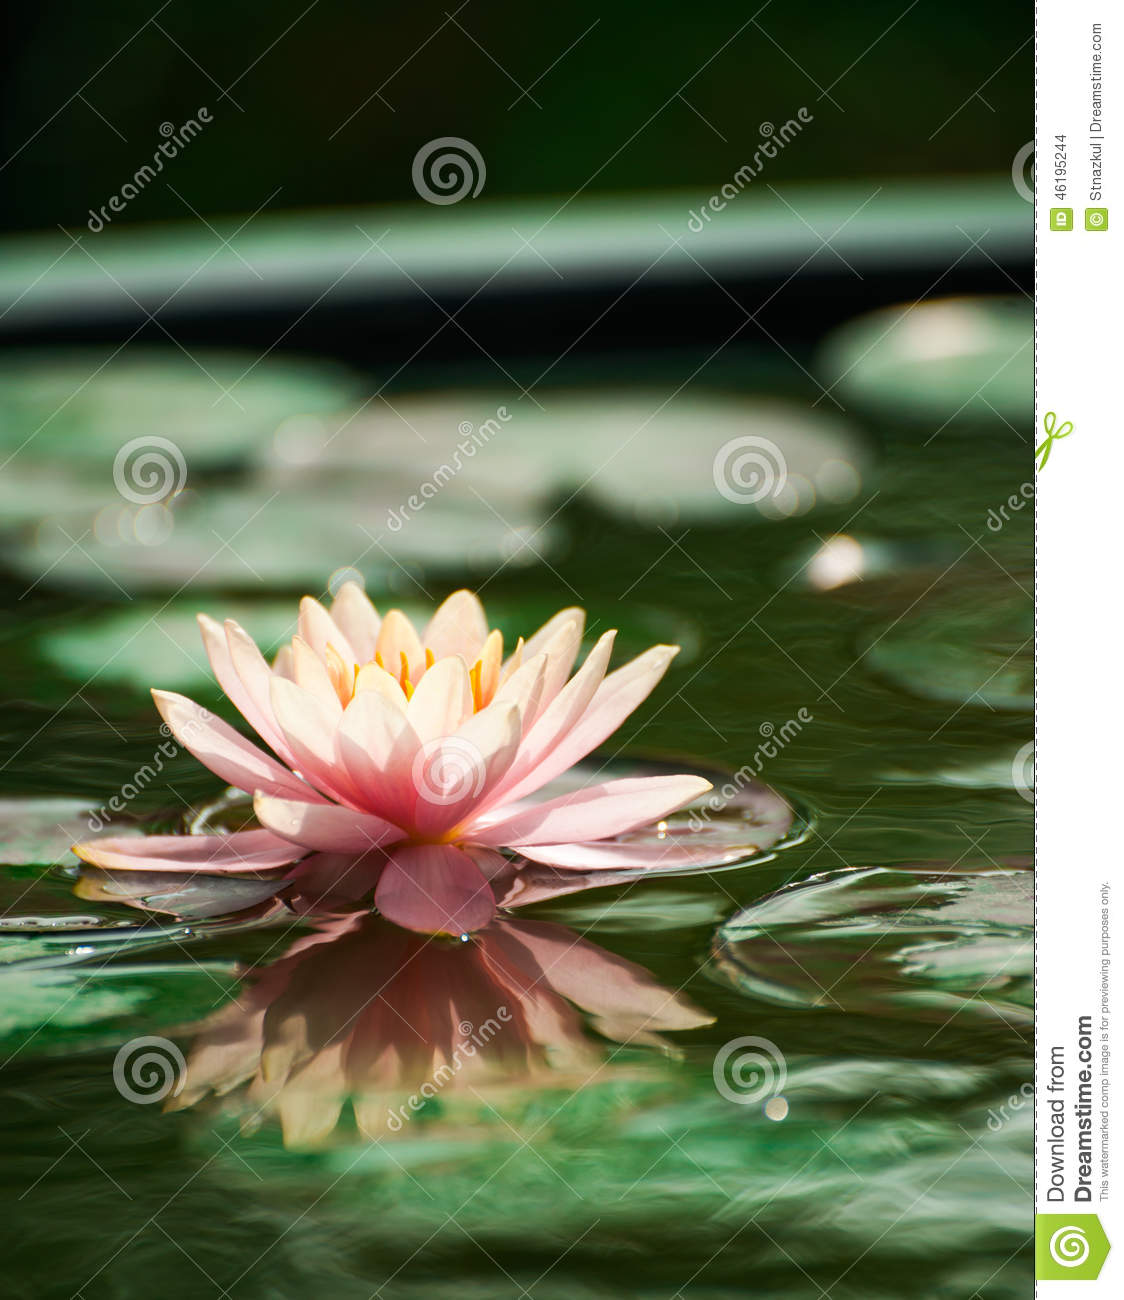 Beautiful Pink Waterlily Or Lotus Flower In Pond Stock Photo Image